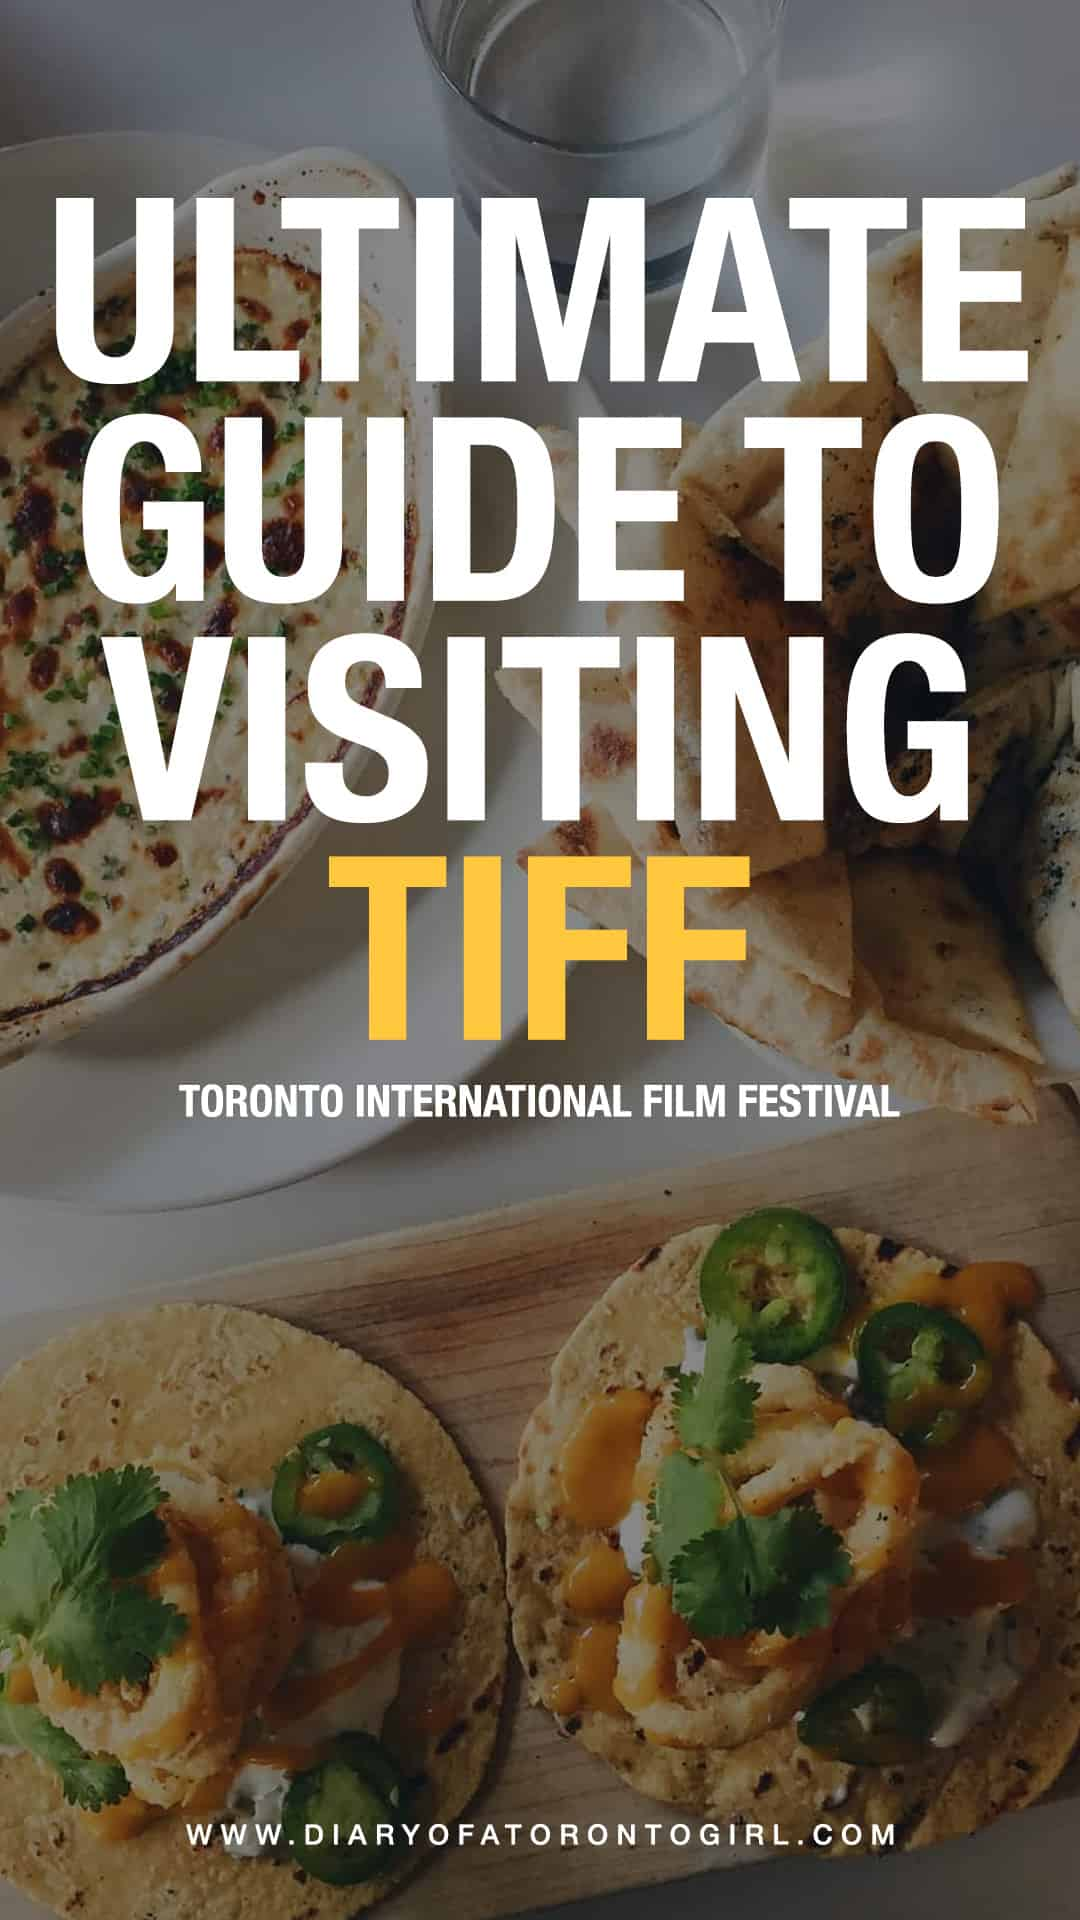 Planning a visit to the Toronto International Film Festival? Here's your ultimate guide on visiting TIFF, including what to do during the festival and where to eat around the theatres!